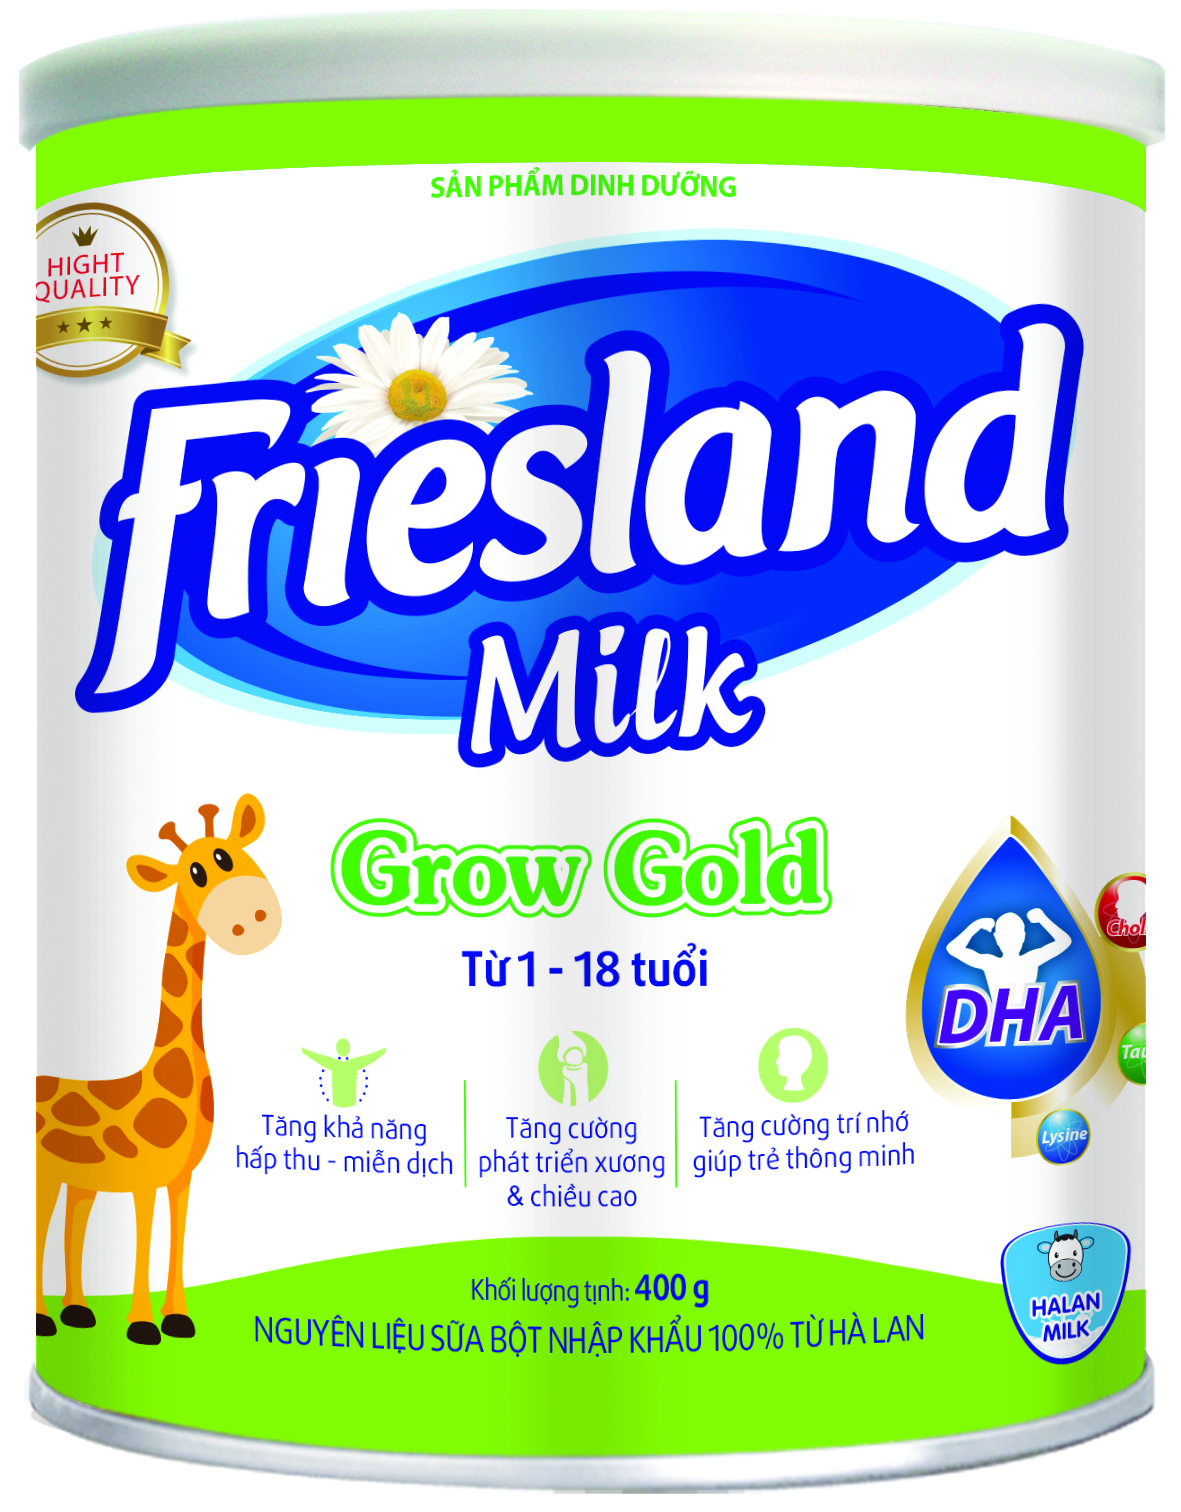 FRIESLAND MILK GROW GOLD 400g